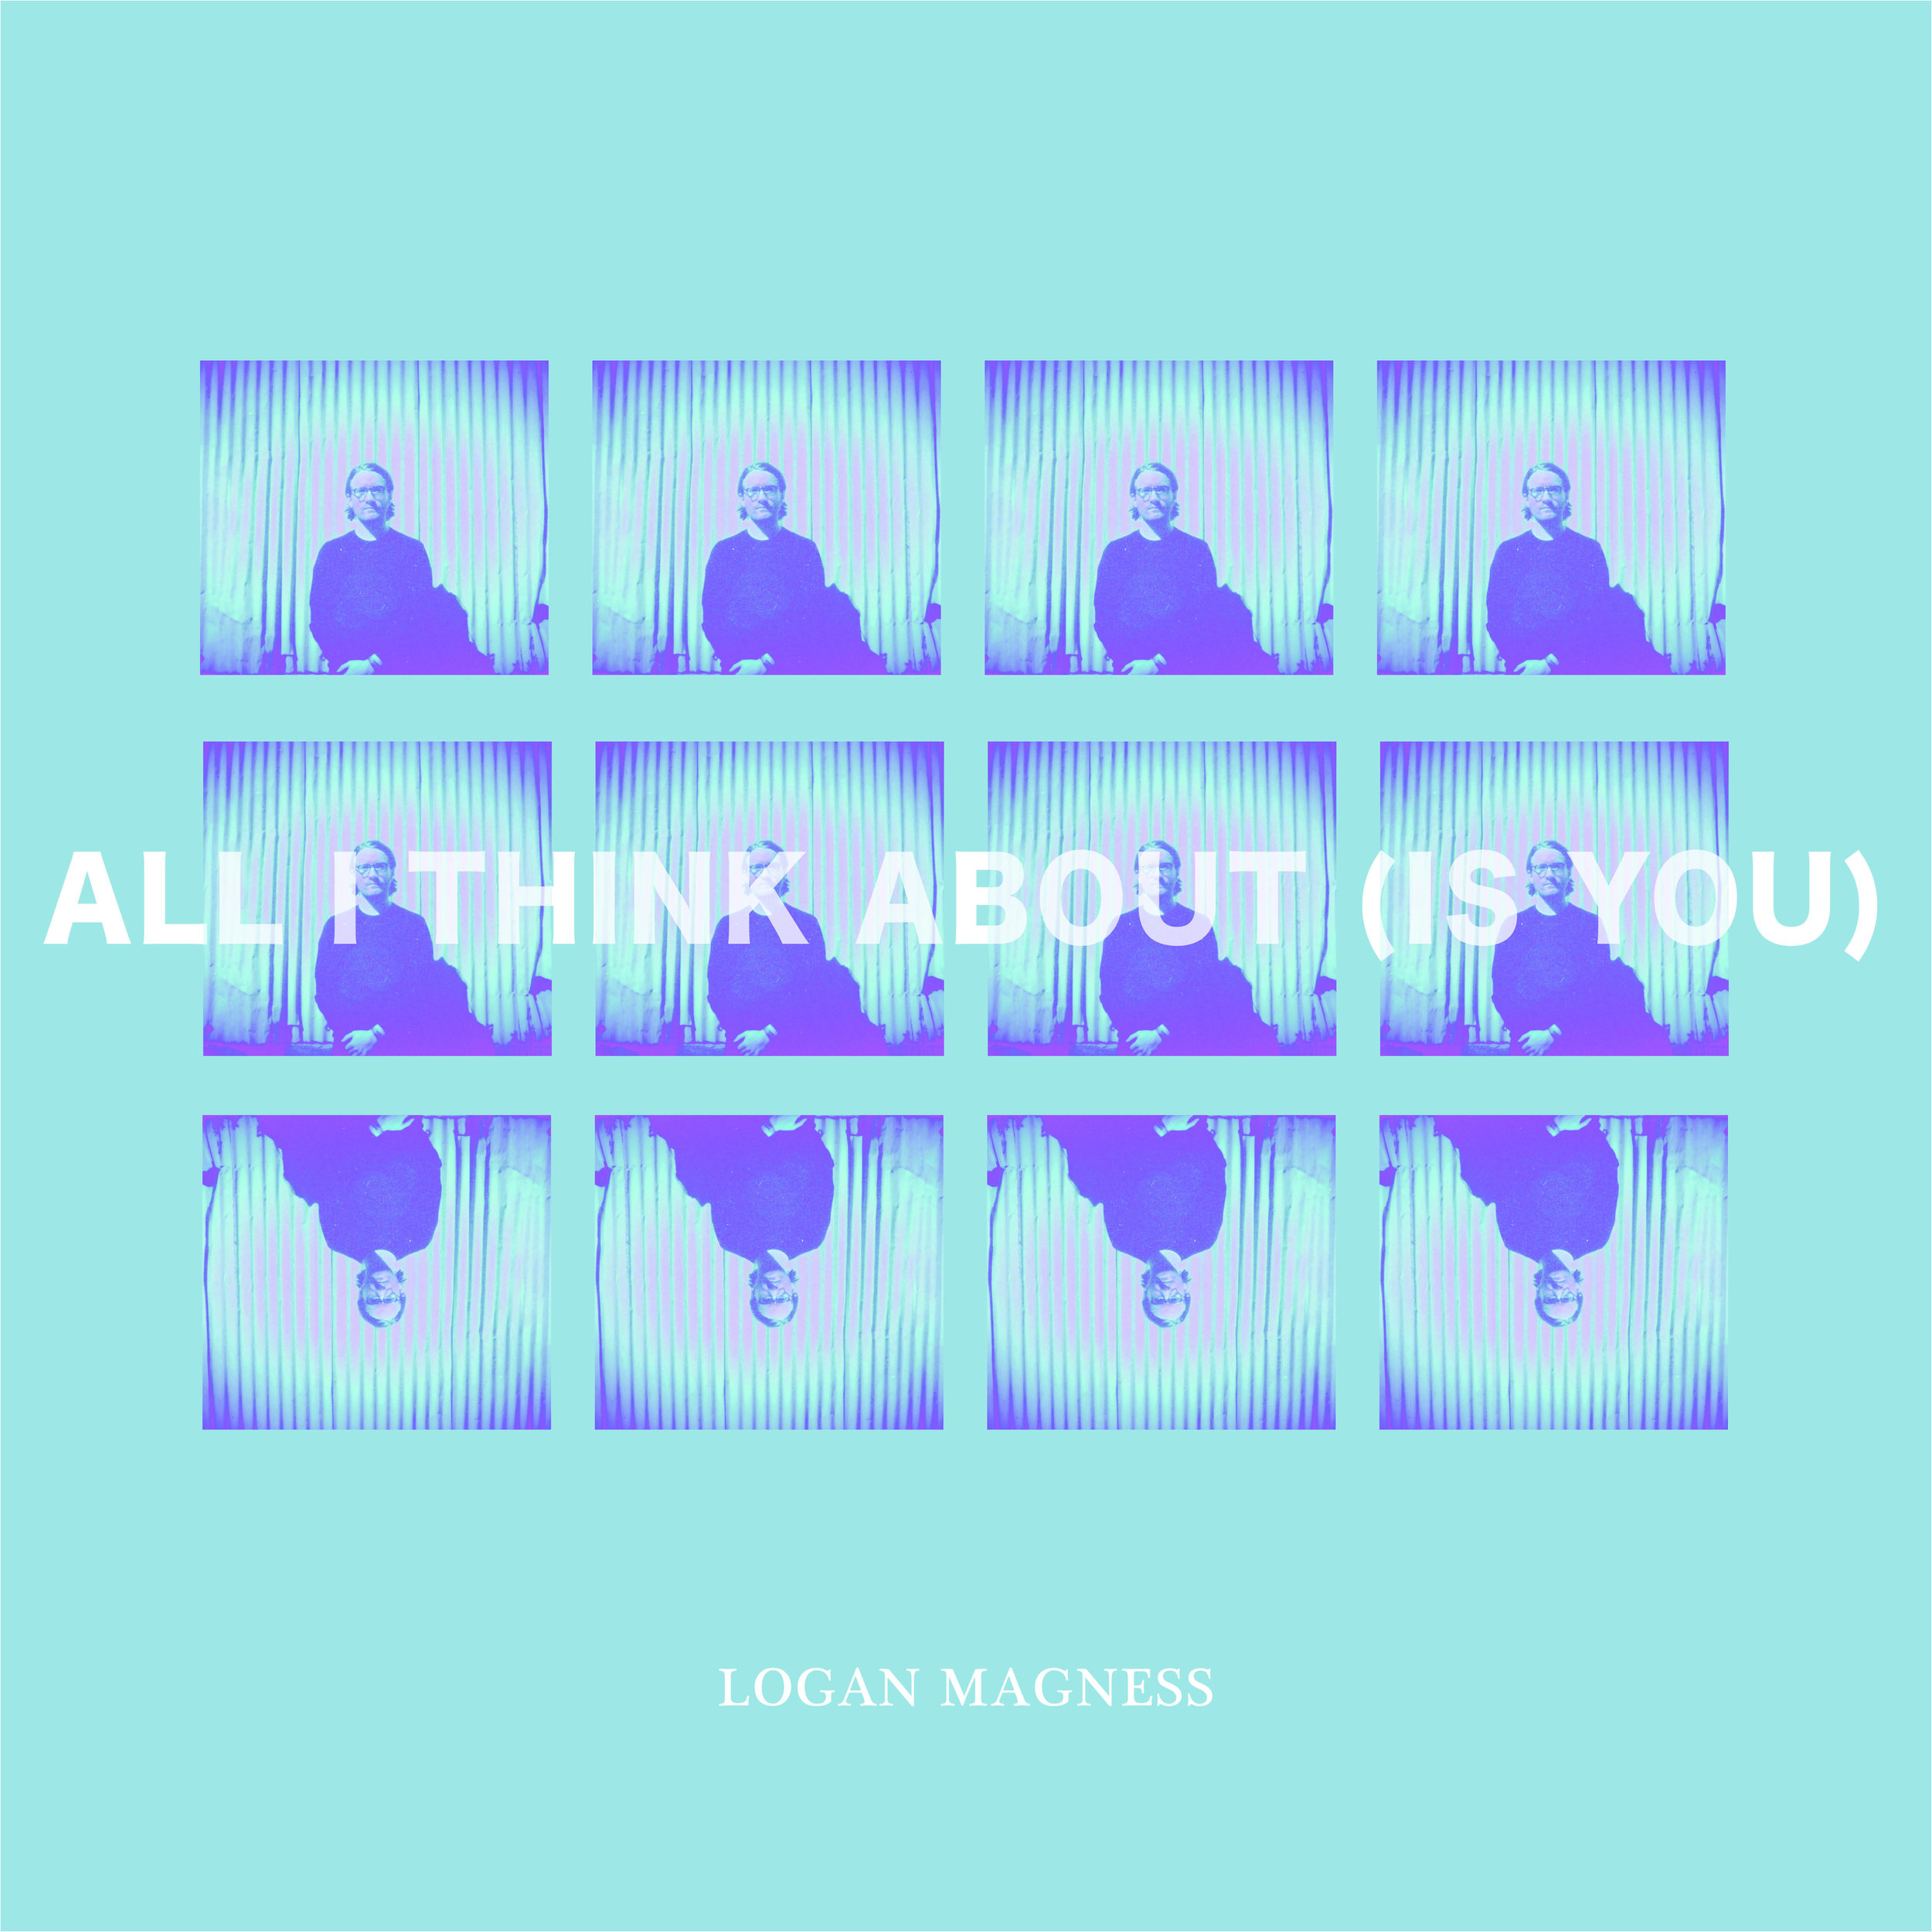 ALL I THINK ABOUT - LOGAN MAGNESSALL I THINK ABOUT (IS YOU) - SINGLERELEASE - JUNE 28, 2019All I Think About (Is You) [Single Version]ll I Think About (Is You) [Acoustic Mix]